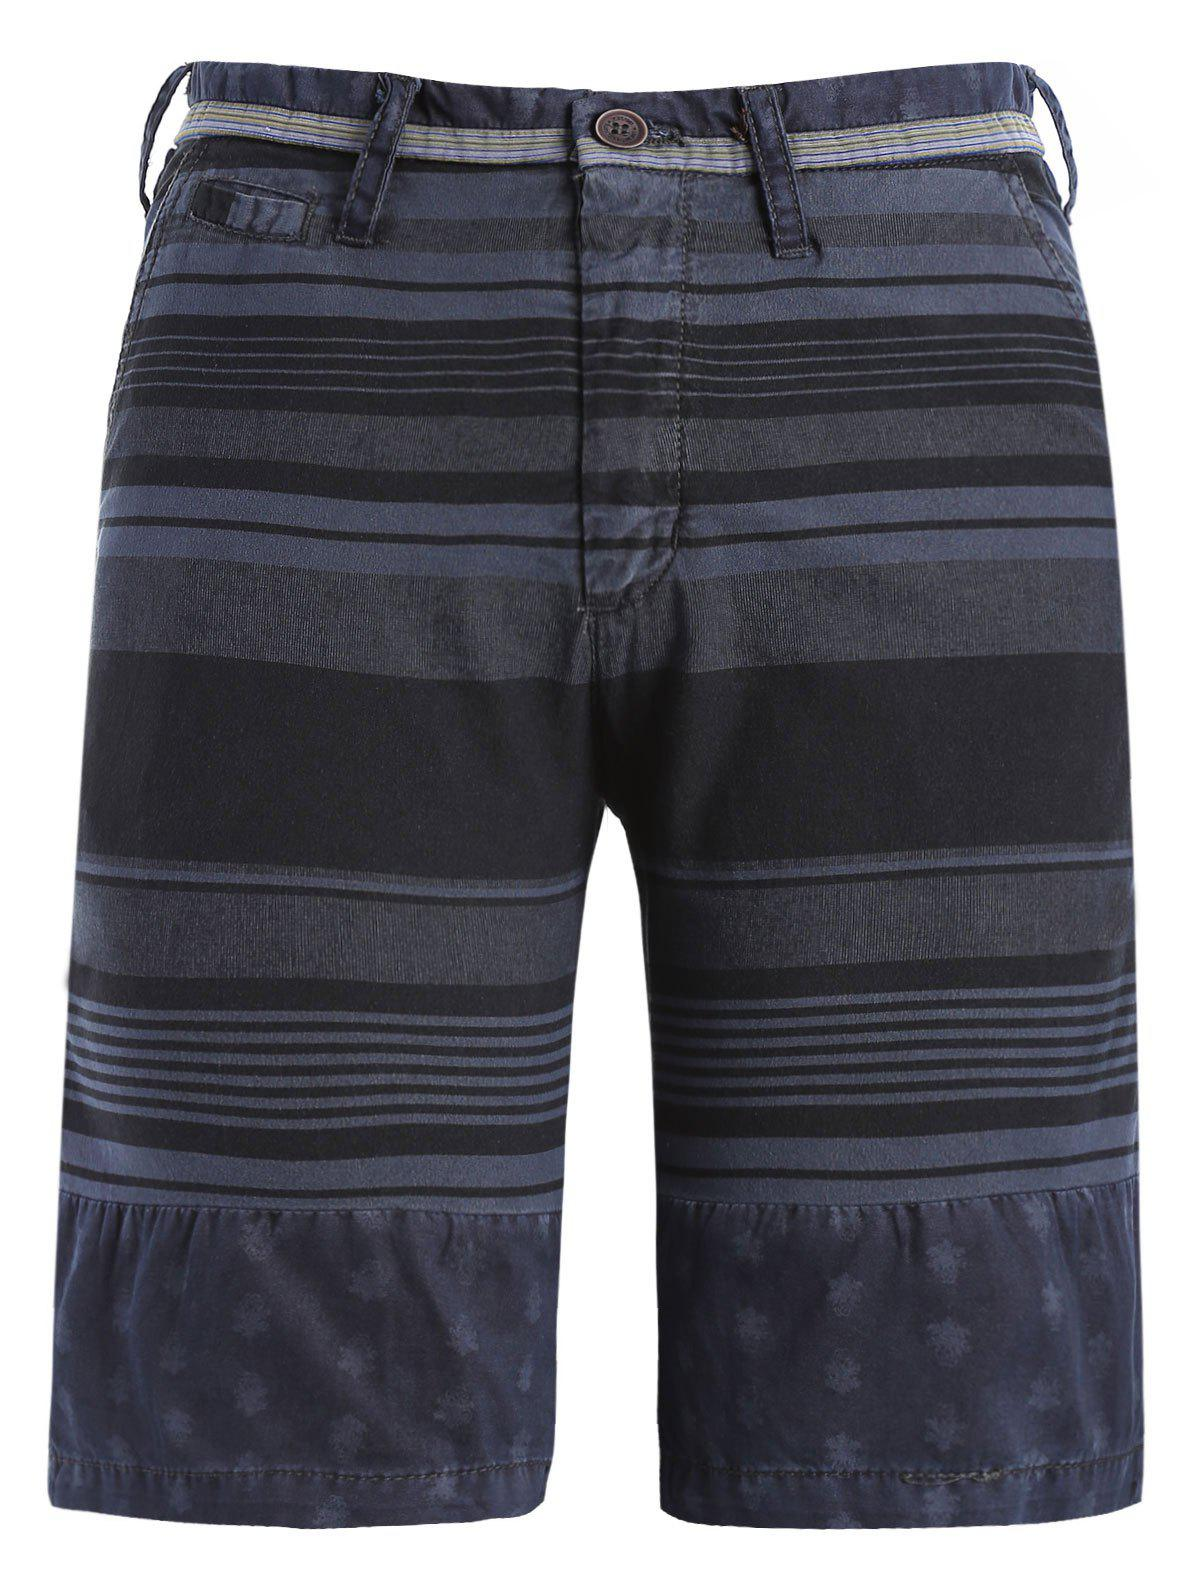 Stripe and Geometric Print Spliced Zipper Fly Straight Leg Men's Shorts